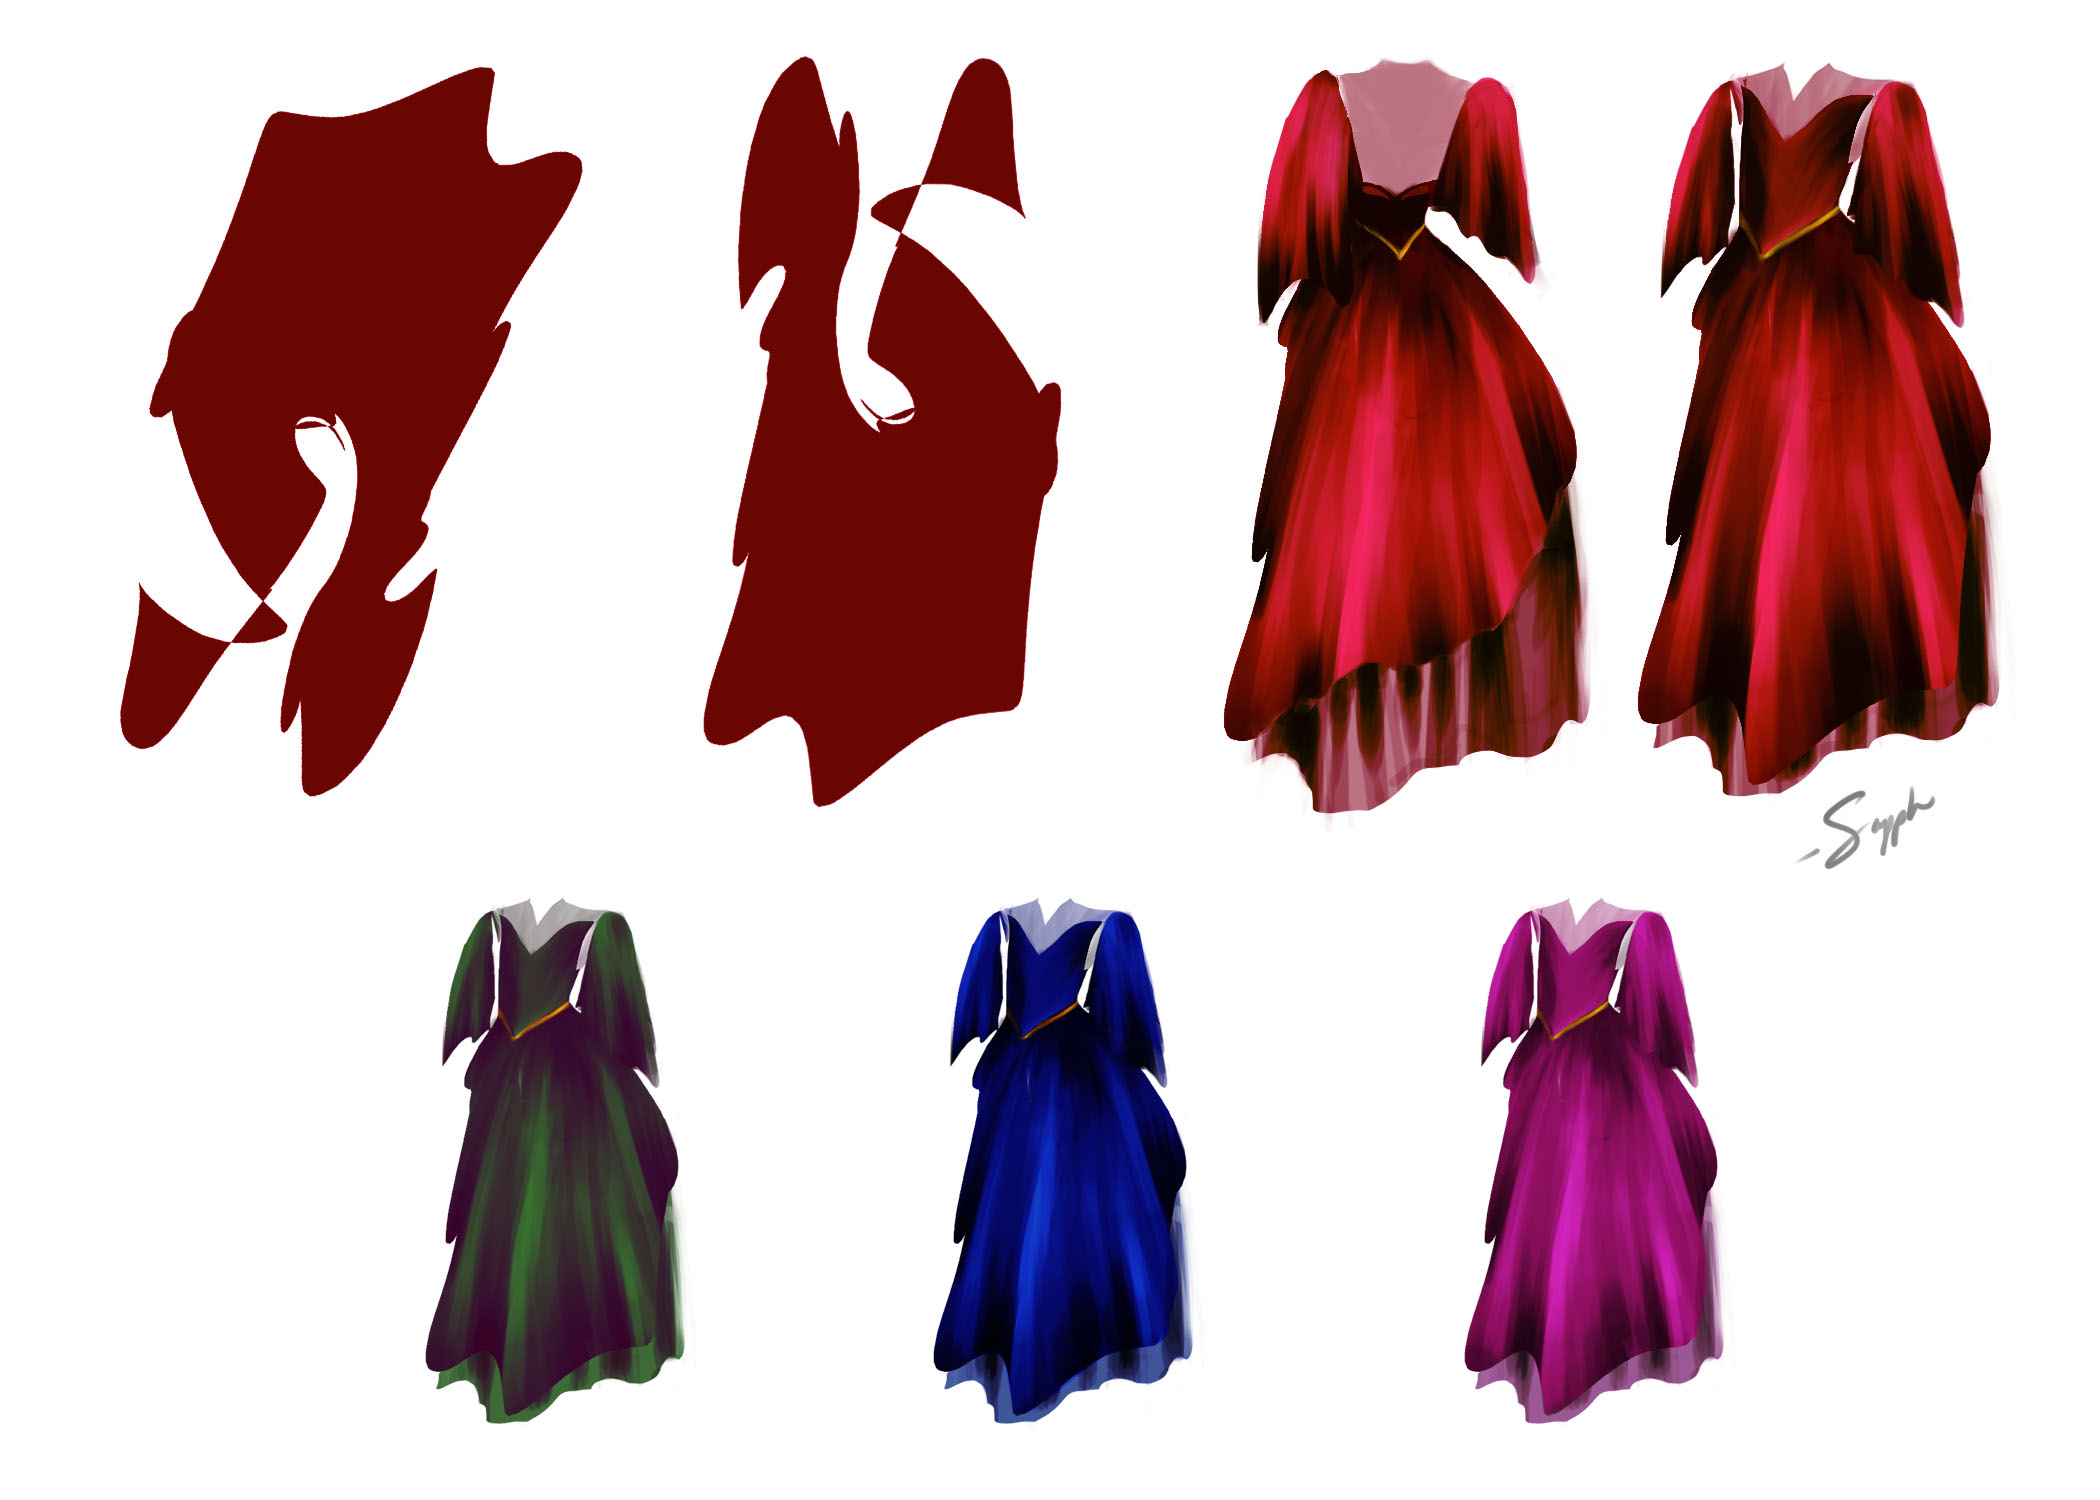 costume shape explorations